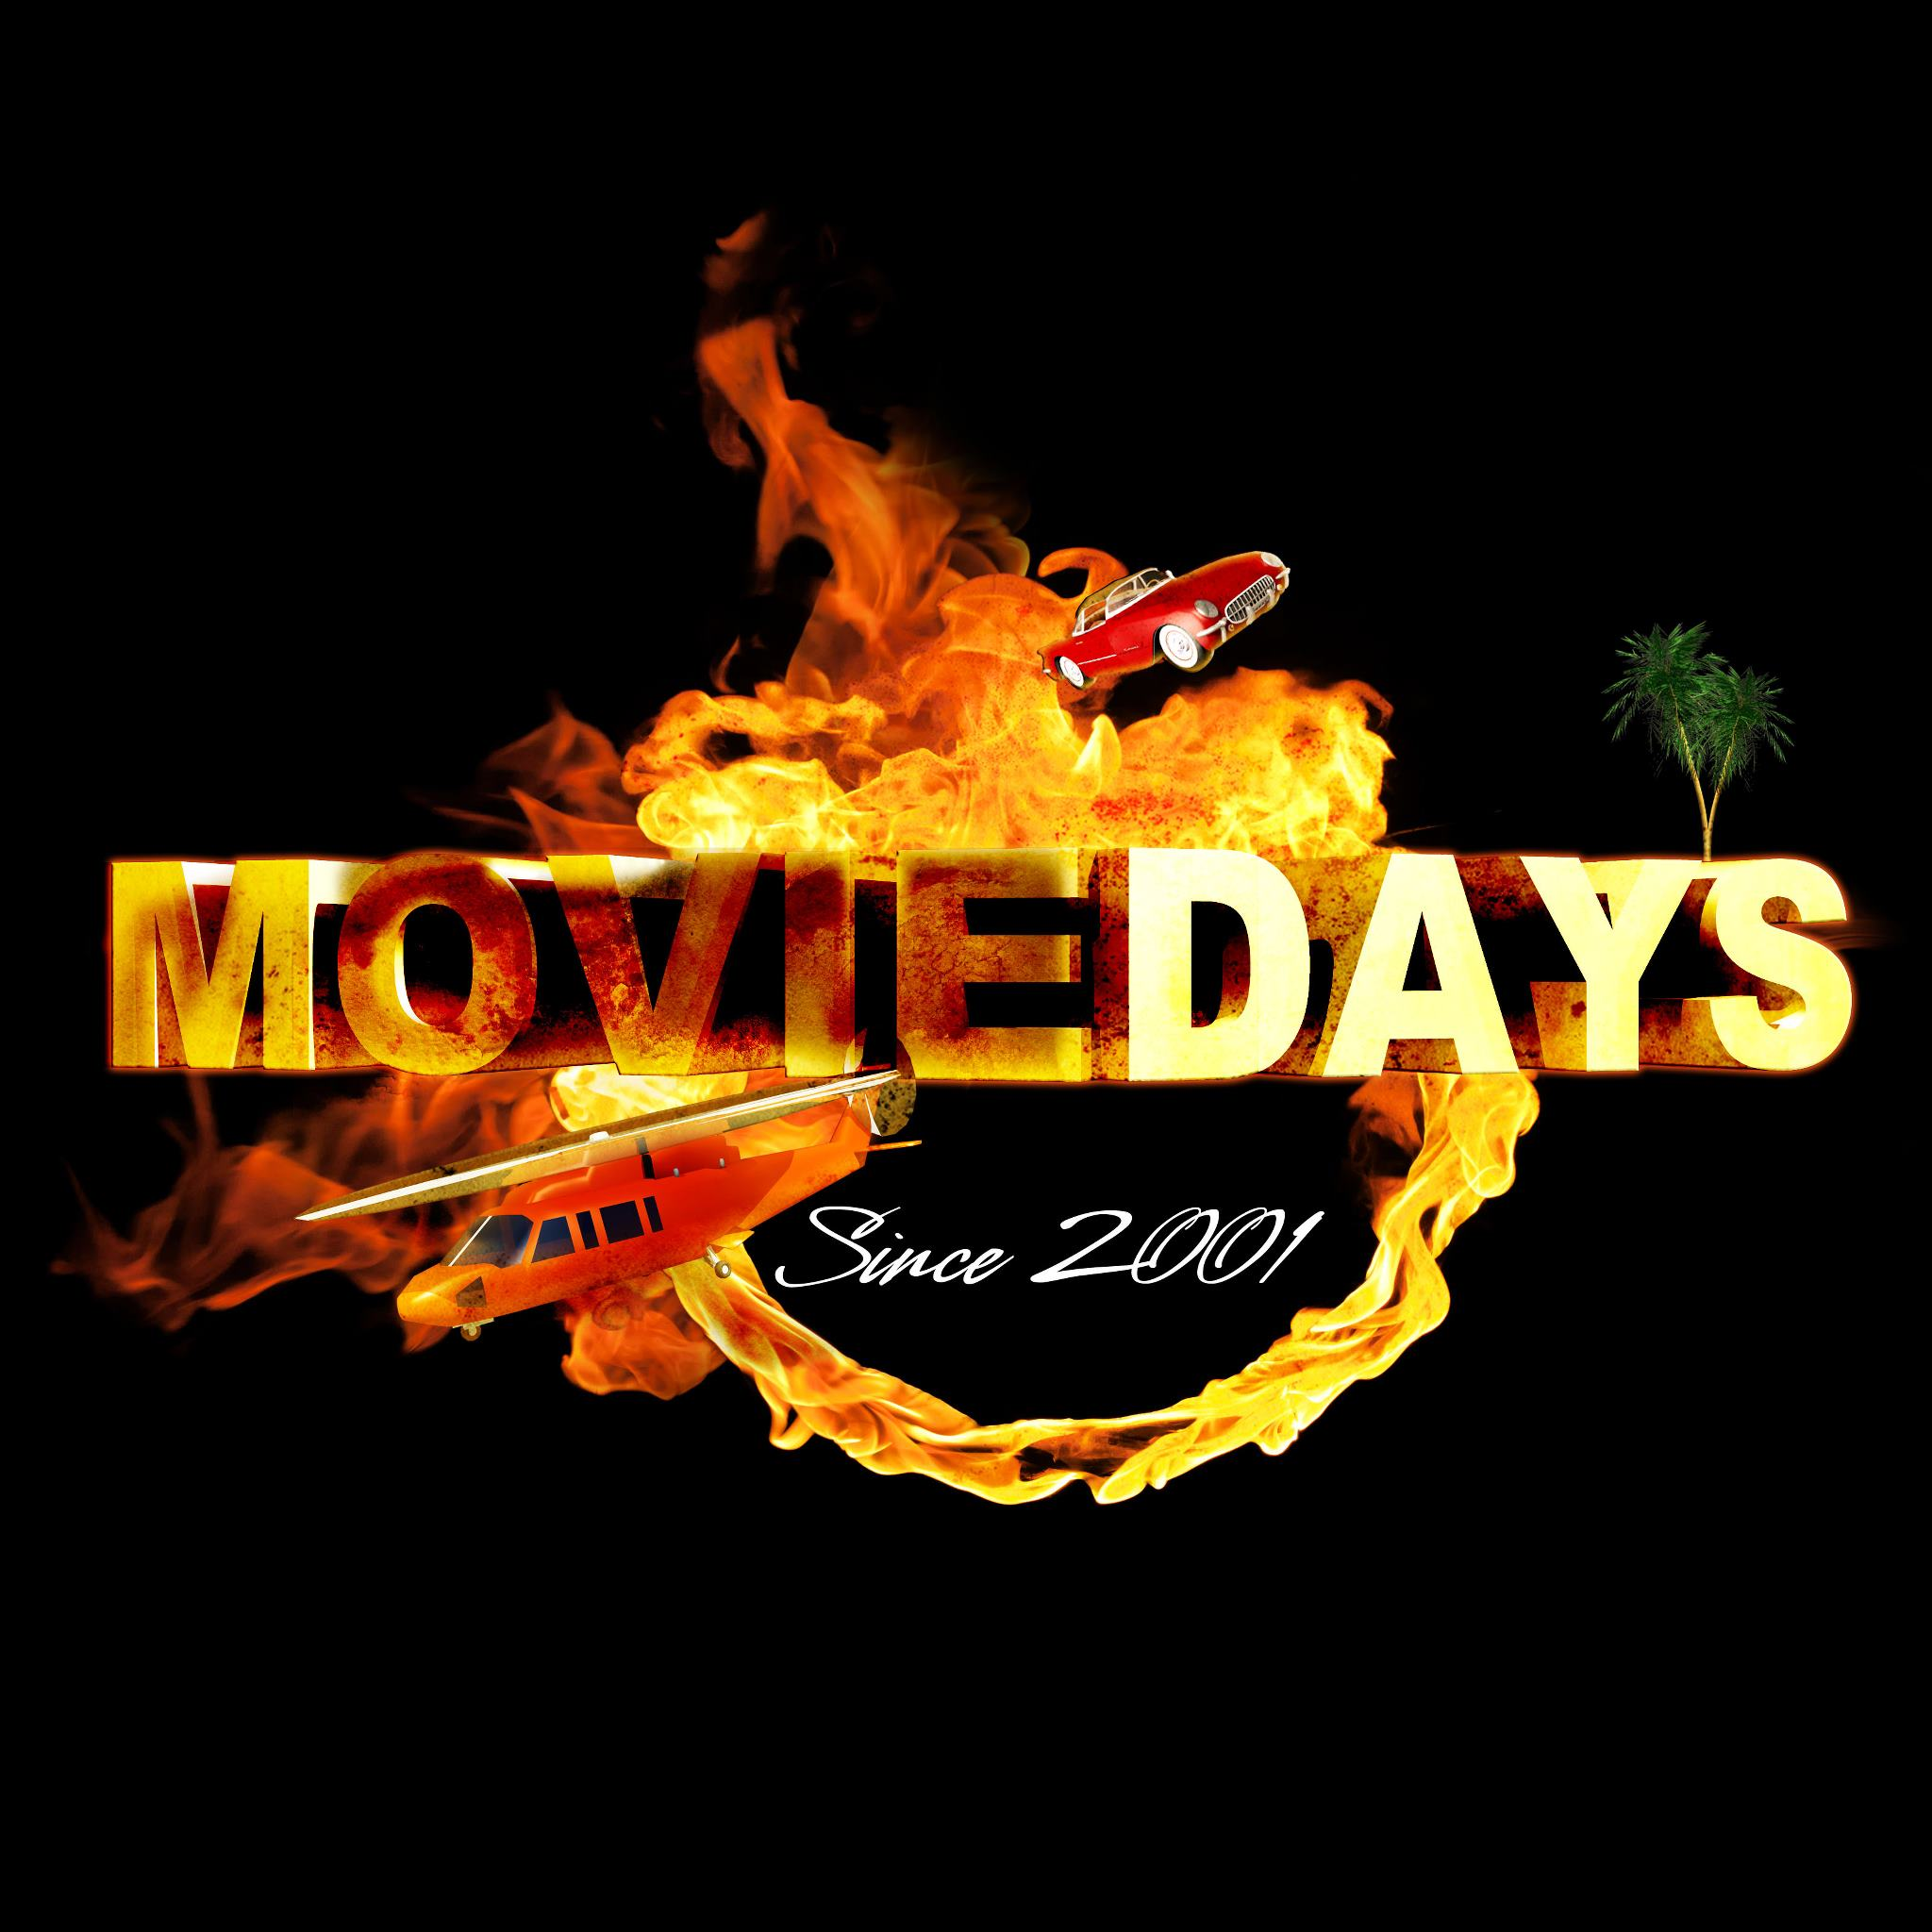 Movie Days